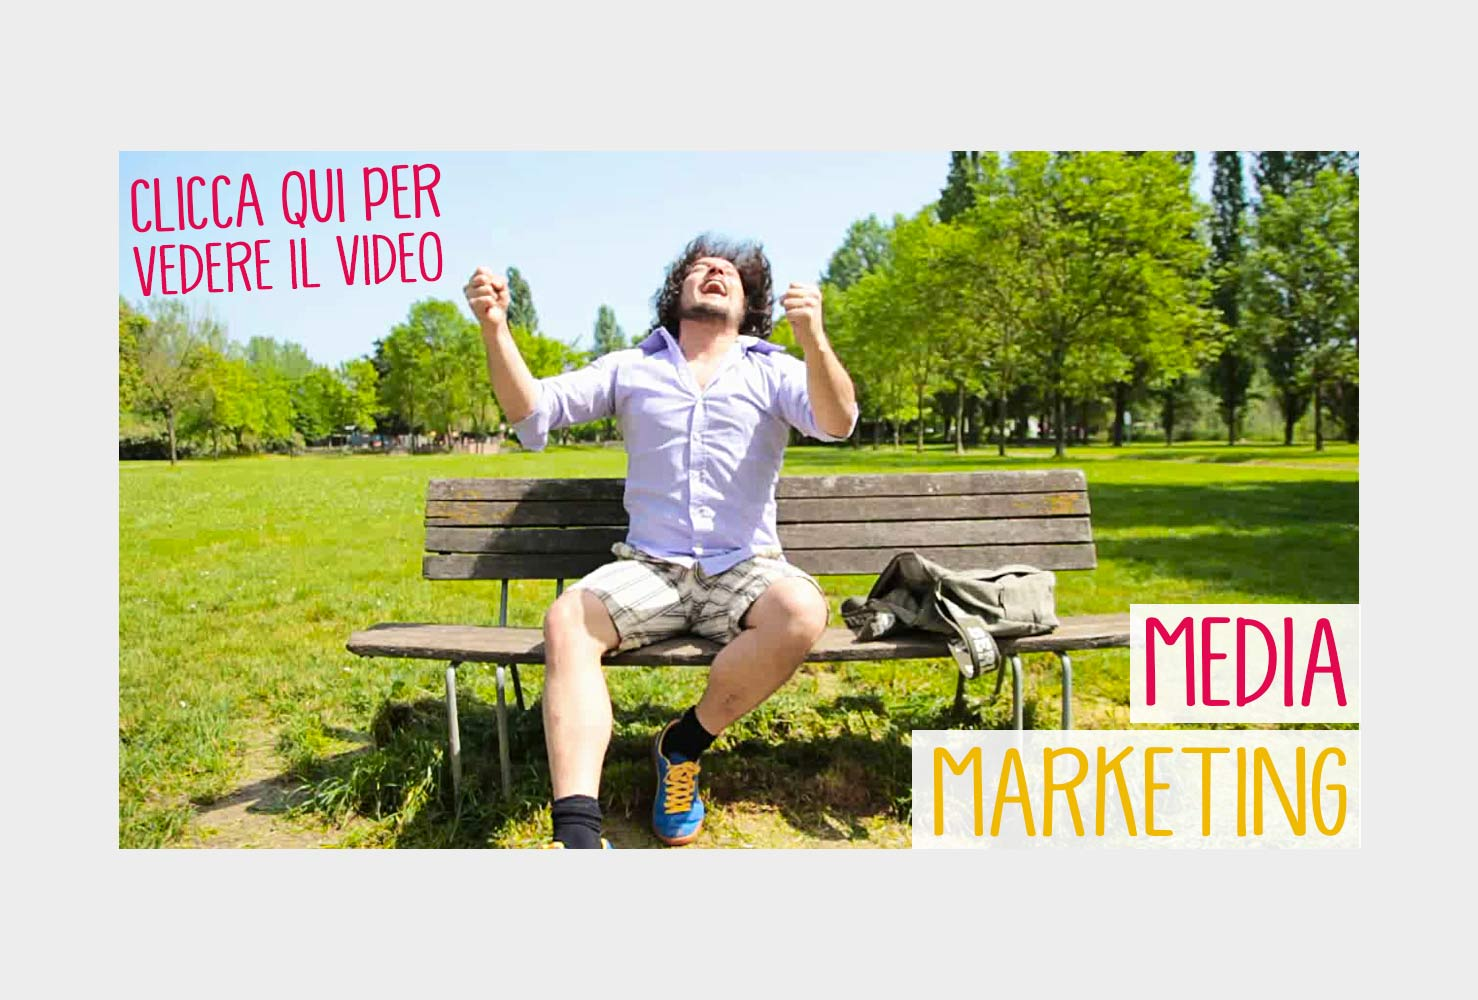 Gioco Adv - Media Marketing